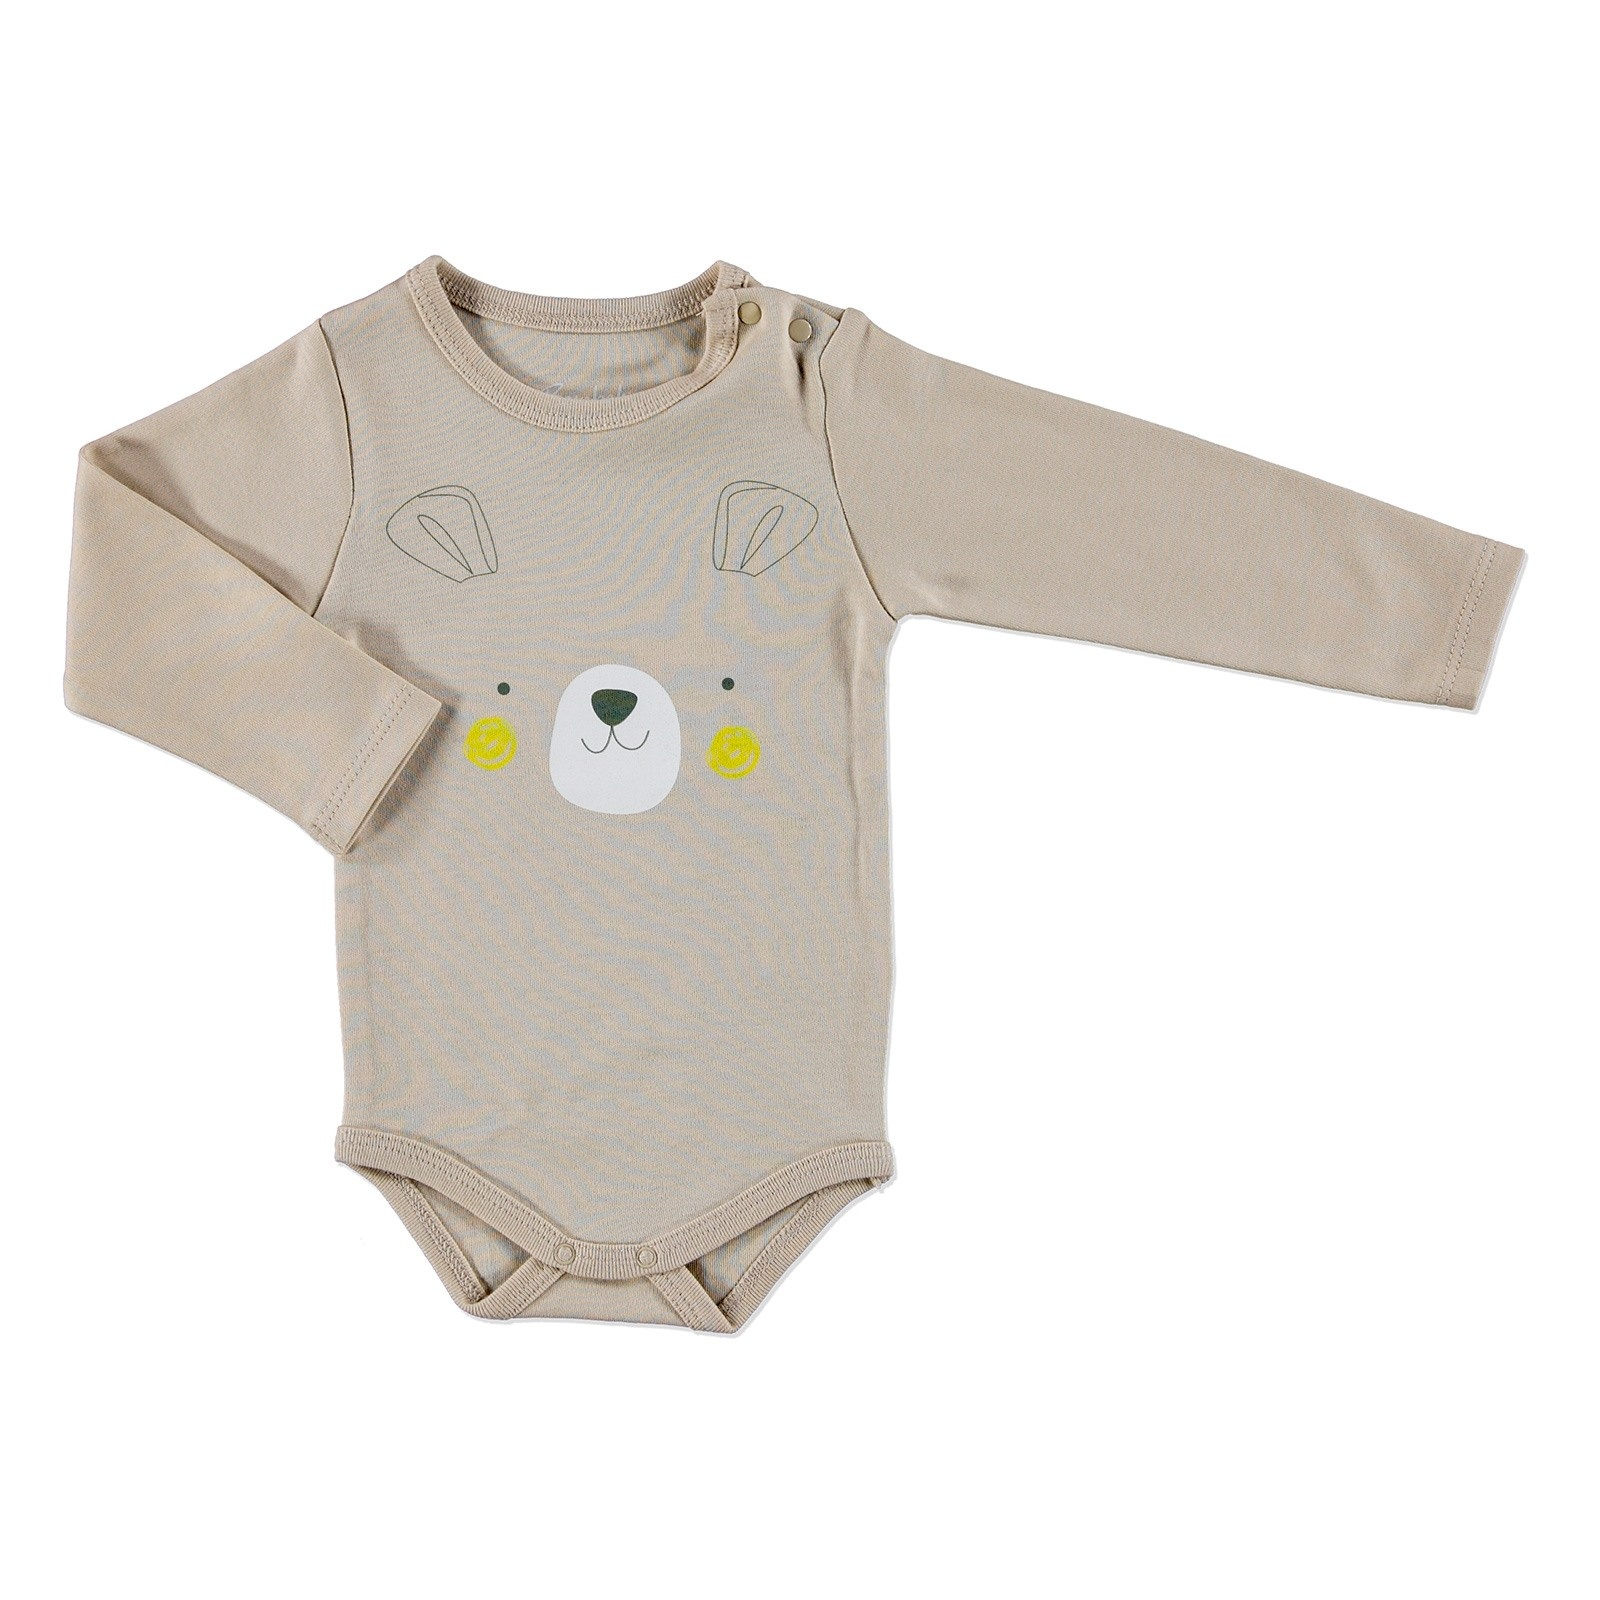 Ebebek Bambaki Scout Bear Baby Boy Long Sleeve Snaps Ear Bodysuit